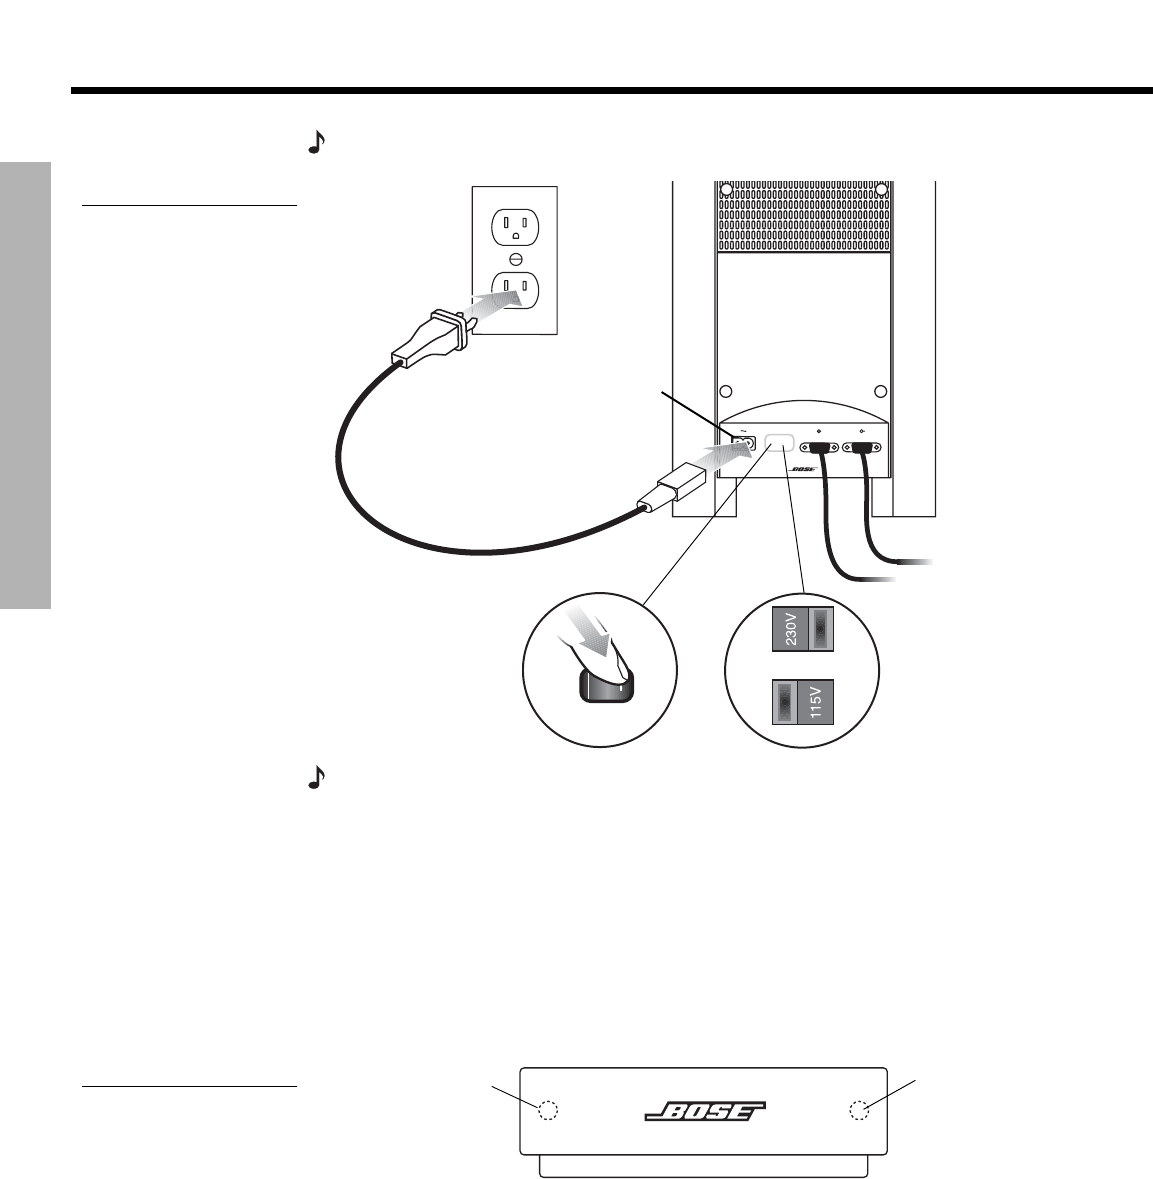 Volvo Wiring Diagrams Kenwood Kdc Harness Diagram. Volvo